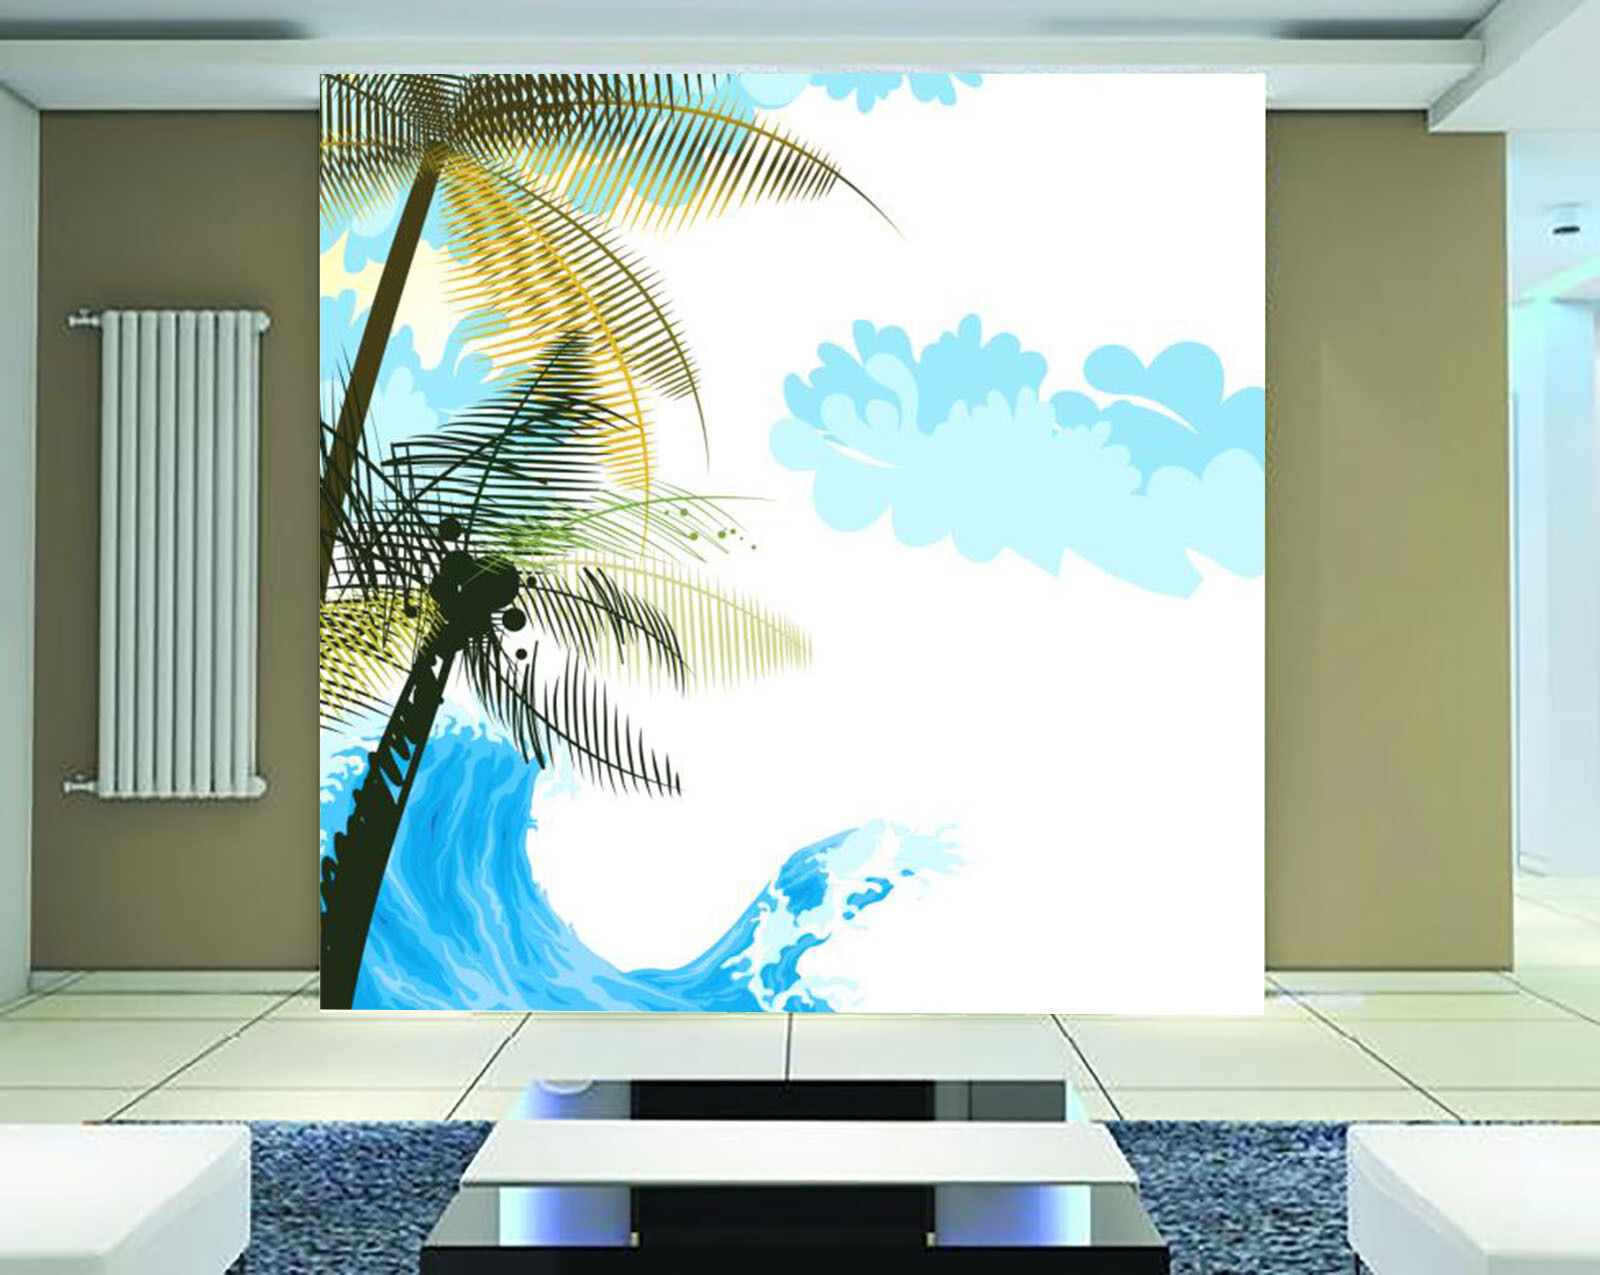 3D Waves, tree 4545 Wall Paper Print Wall Decal Deco Indoor Wall Murals